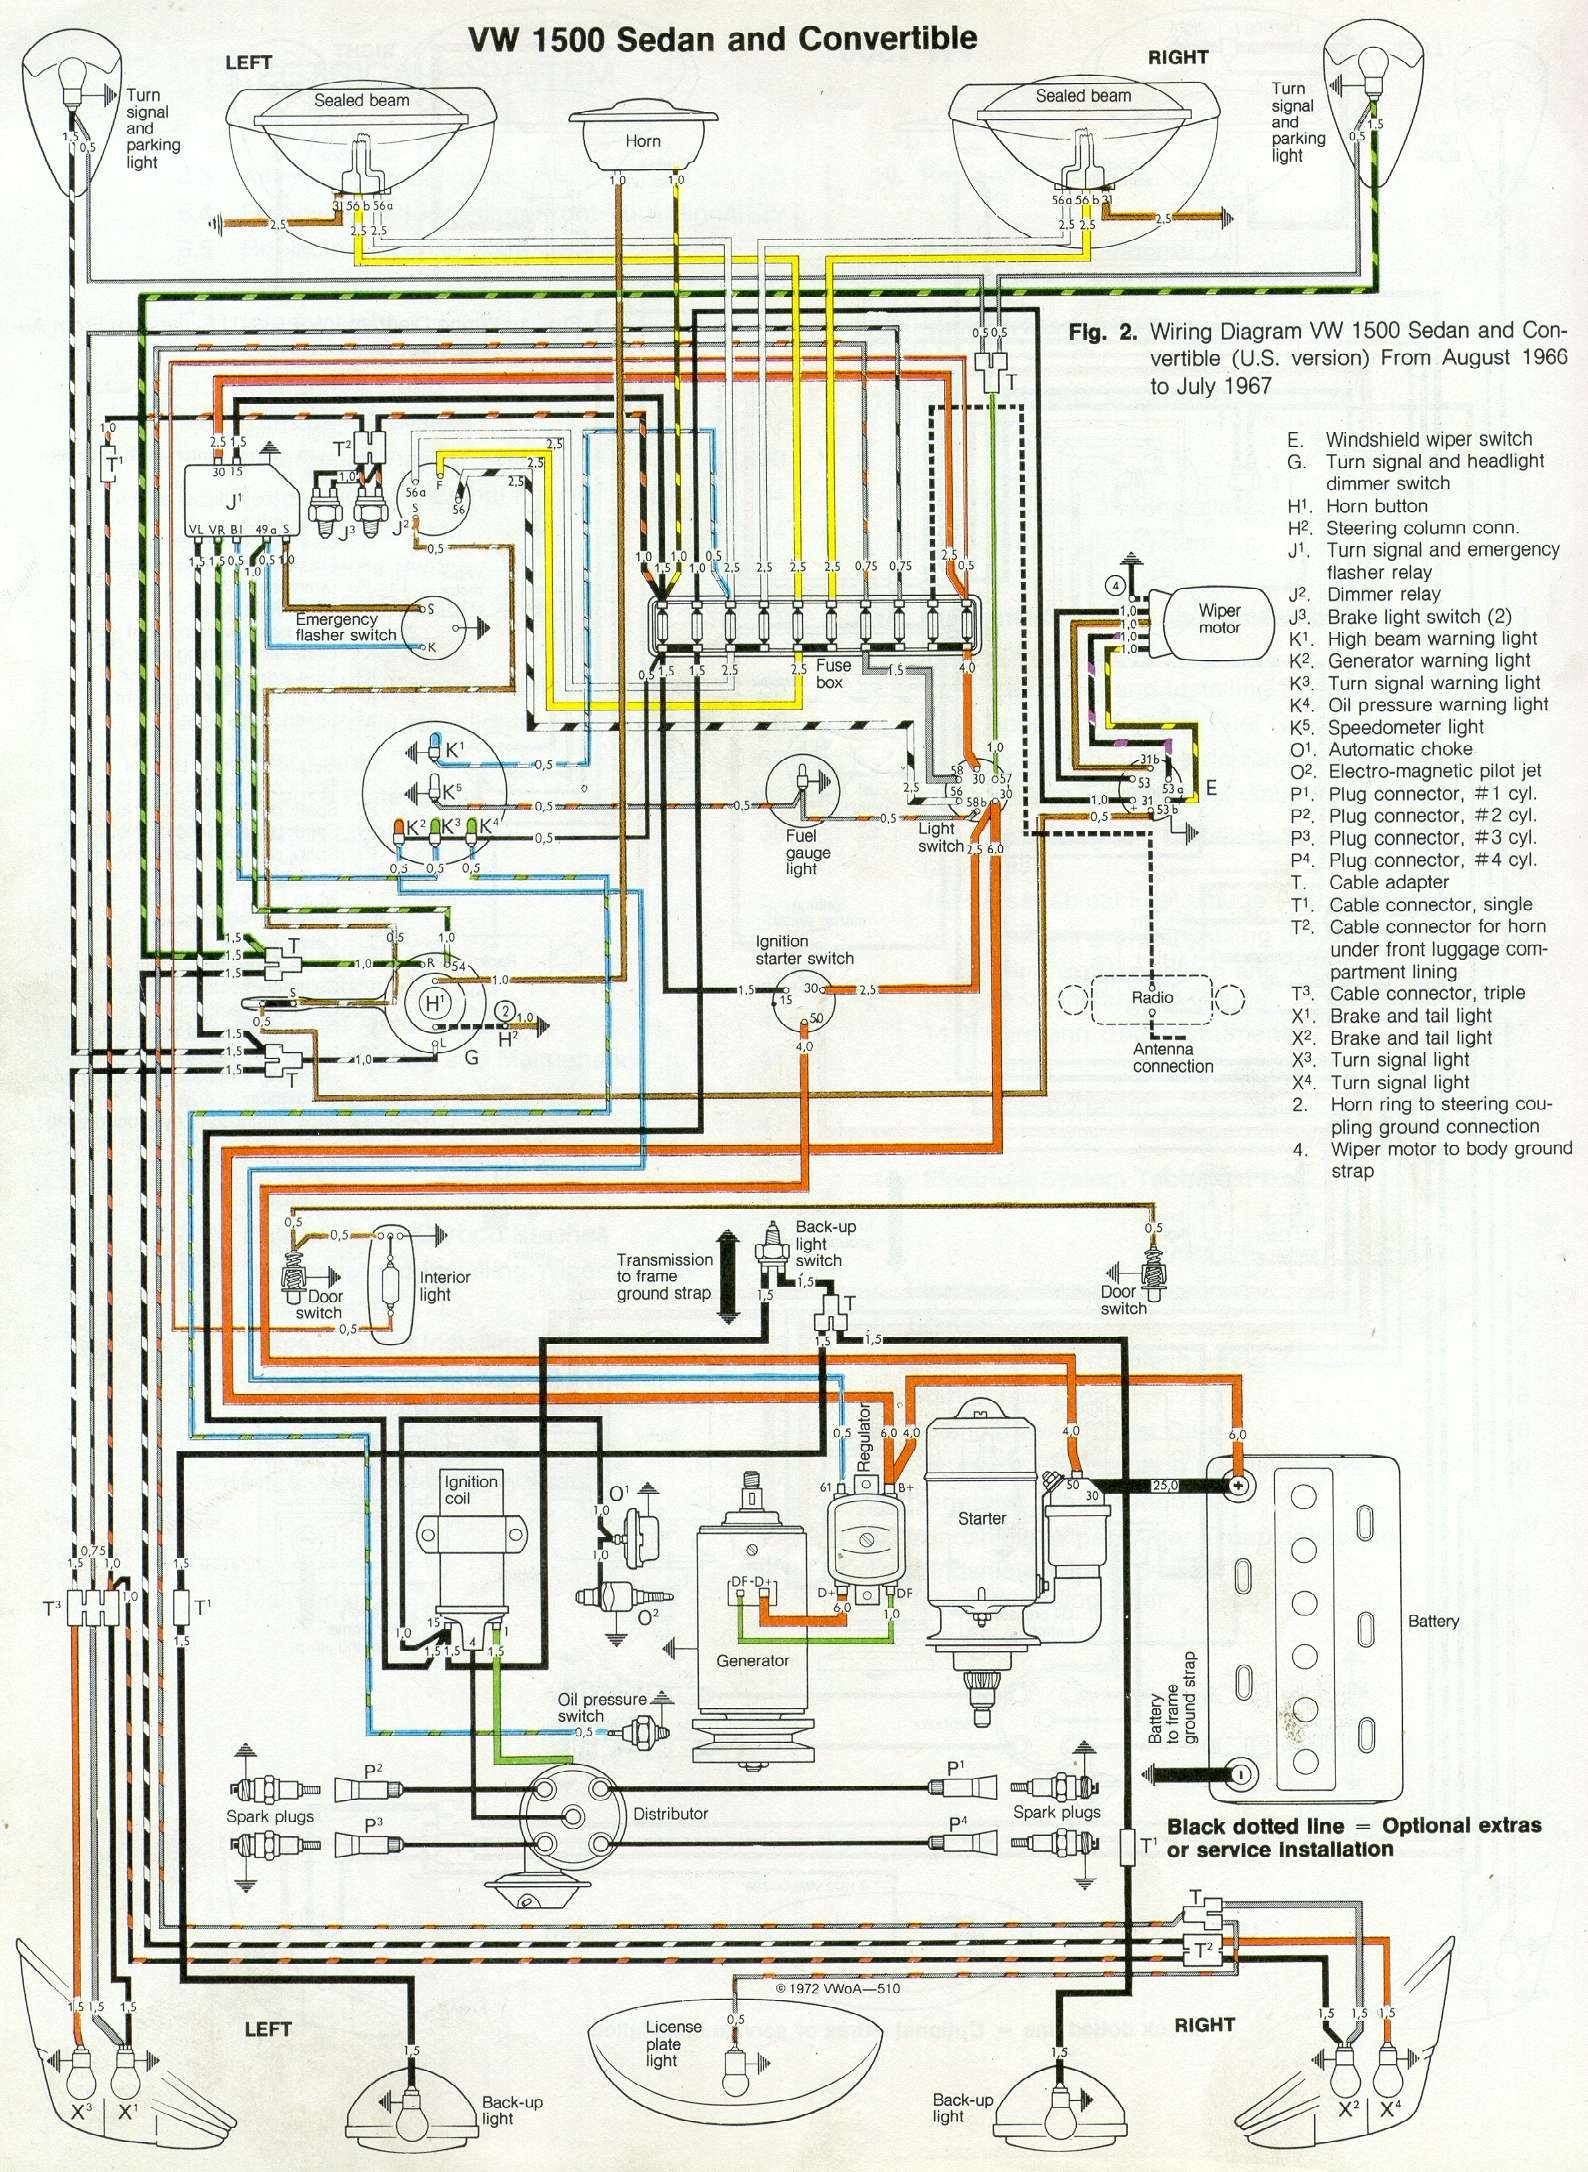 66 and 67 vw beetle wiring diagram 1967 vw beetle [ 877 x 1200 Pixel ]